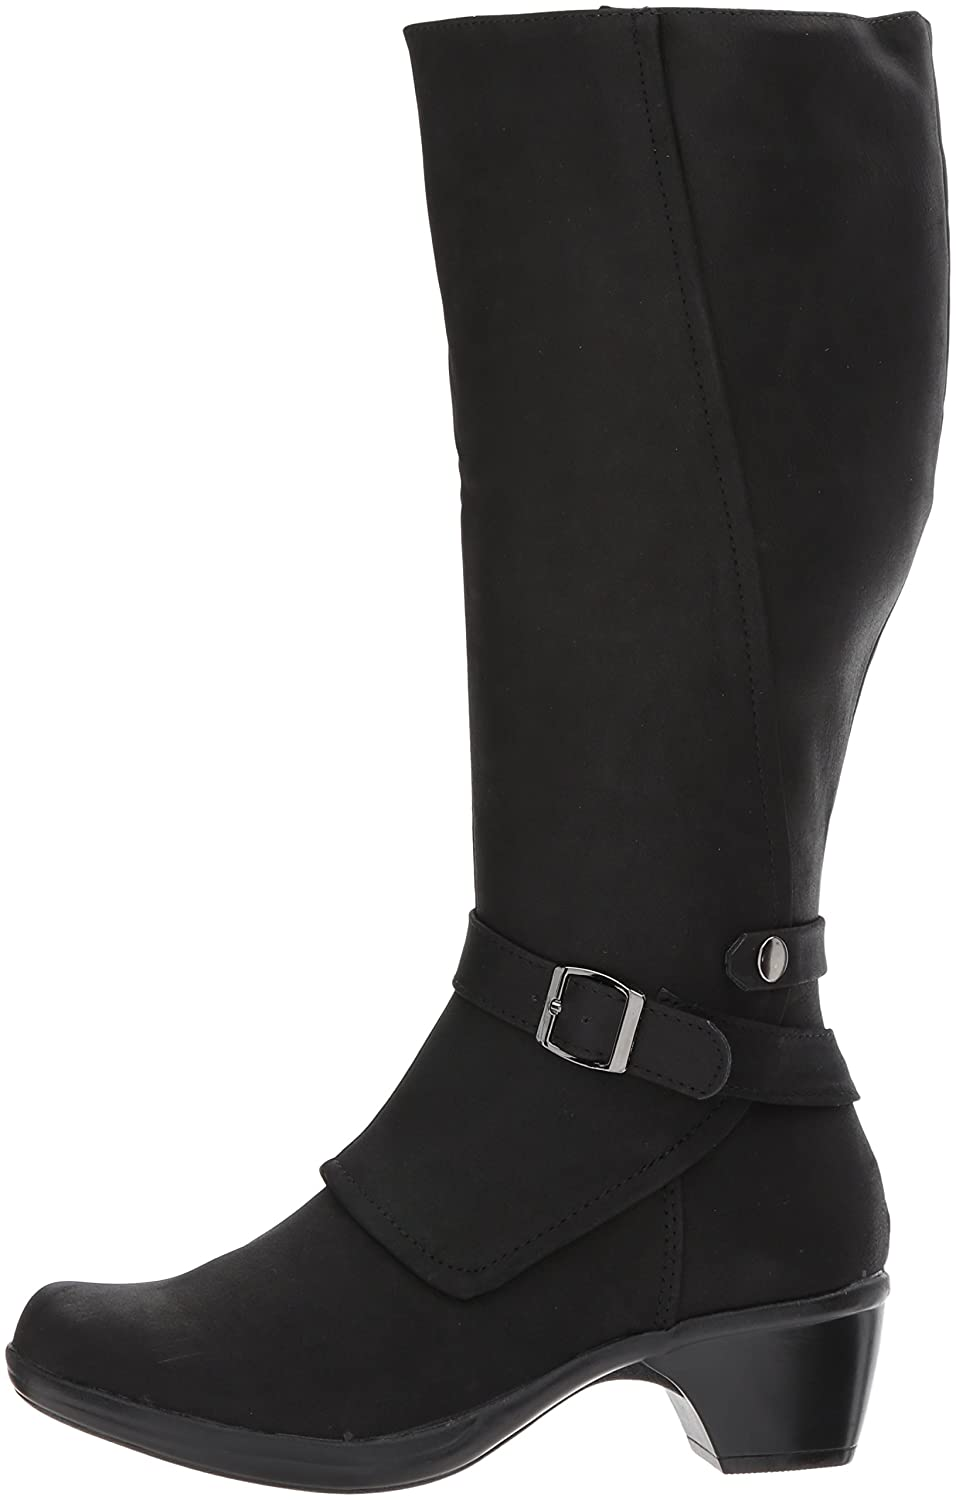 Easy Street Women's Jan Plus Harness Boot B072M25LVR 5.5 B(M) US|Black